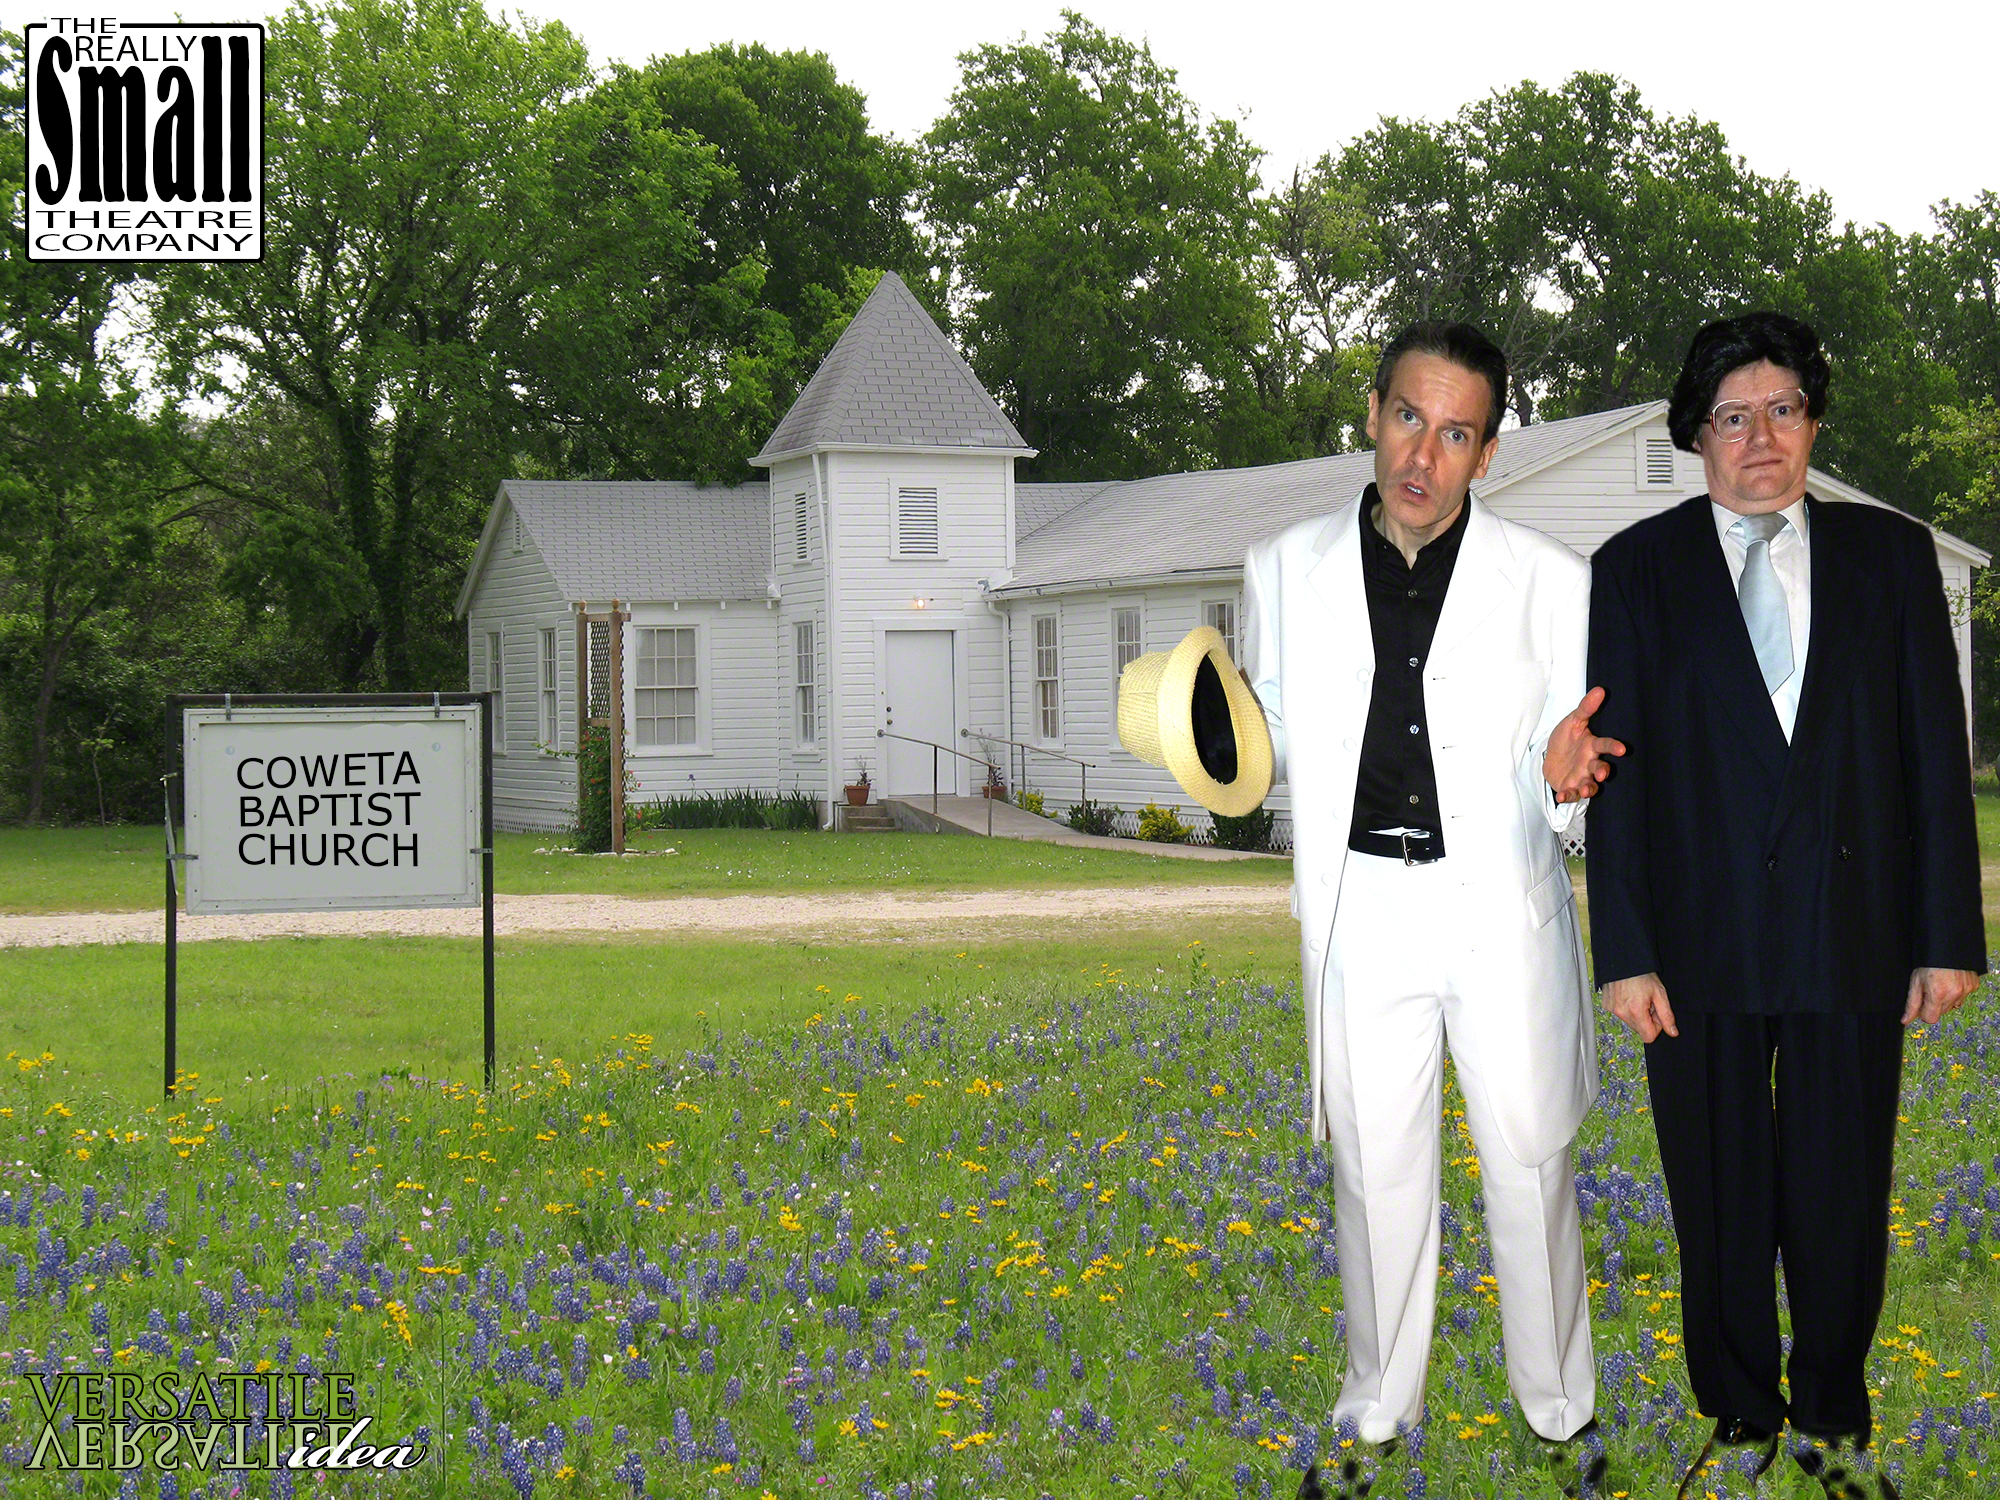 Local preacher, Reverend Spikes, and city council candidate, Phinas Blye pose in front of Coweta Baptist Church.